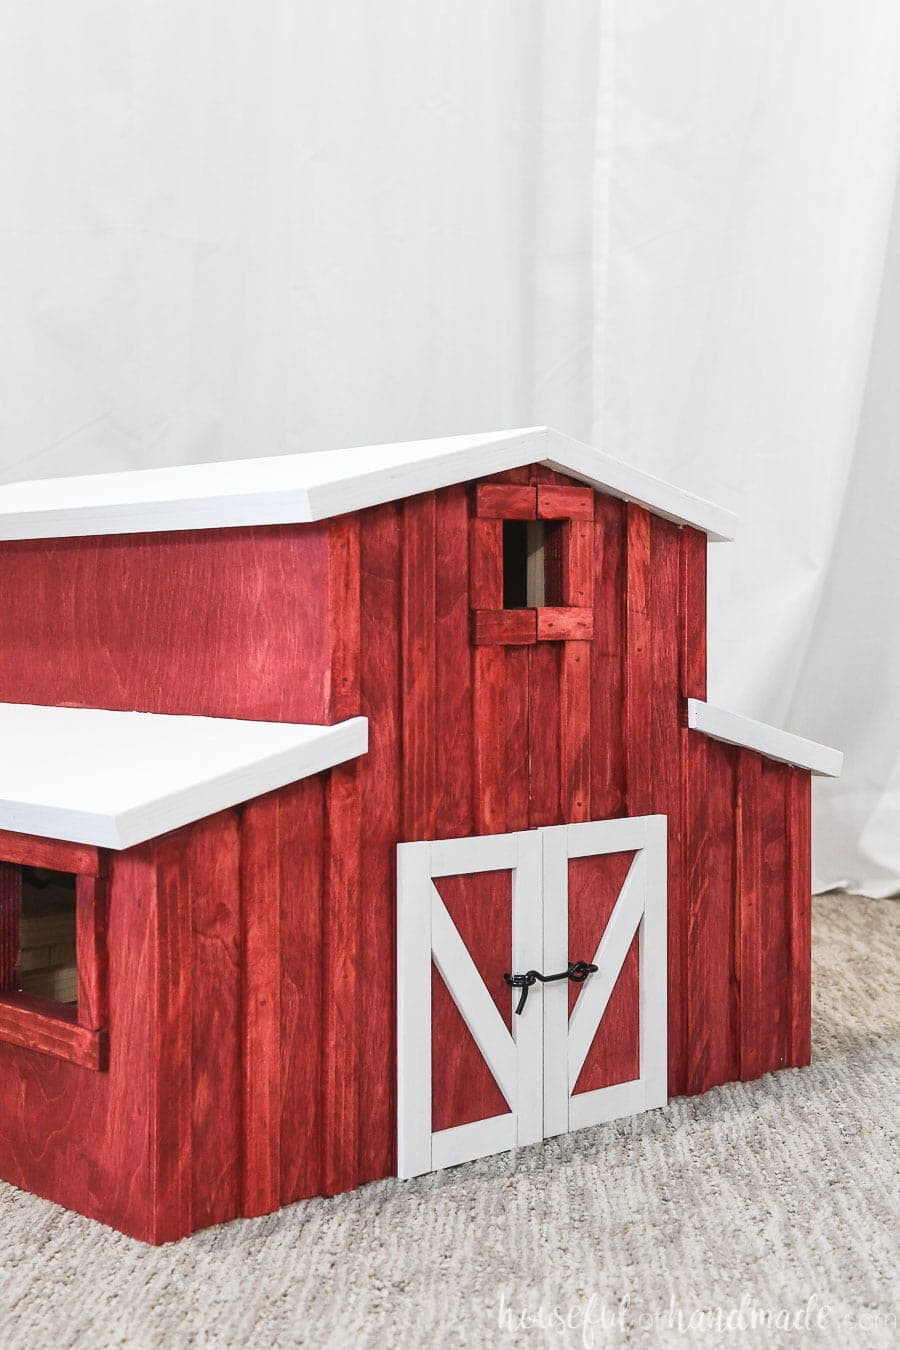 Red barn dollhouse all closed up and latched.